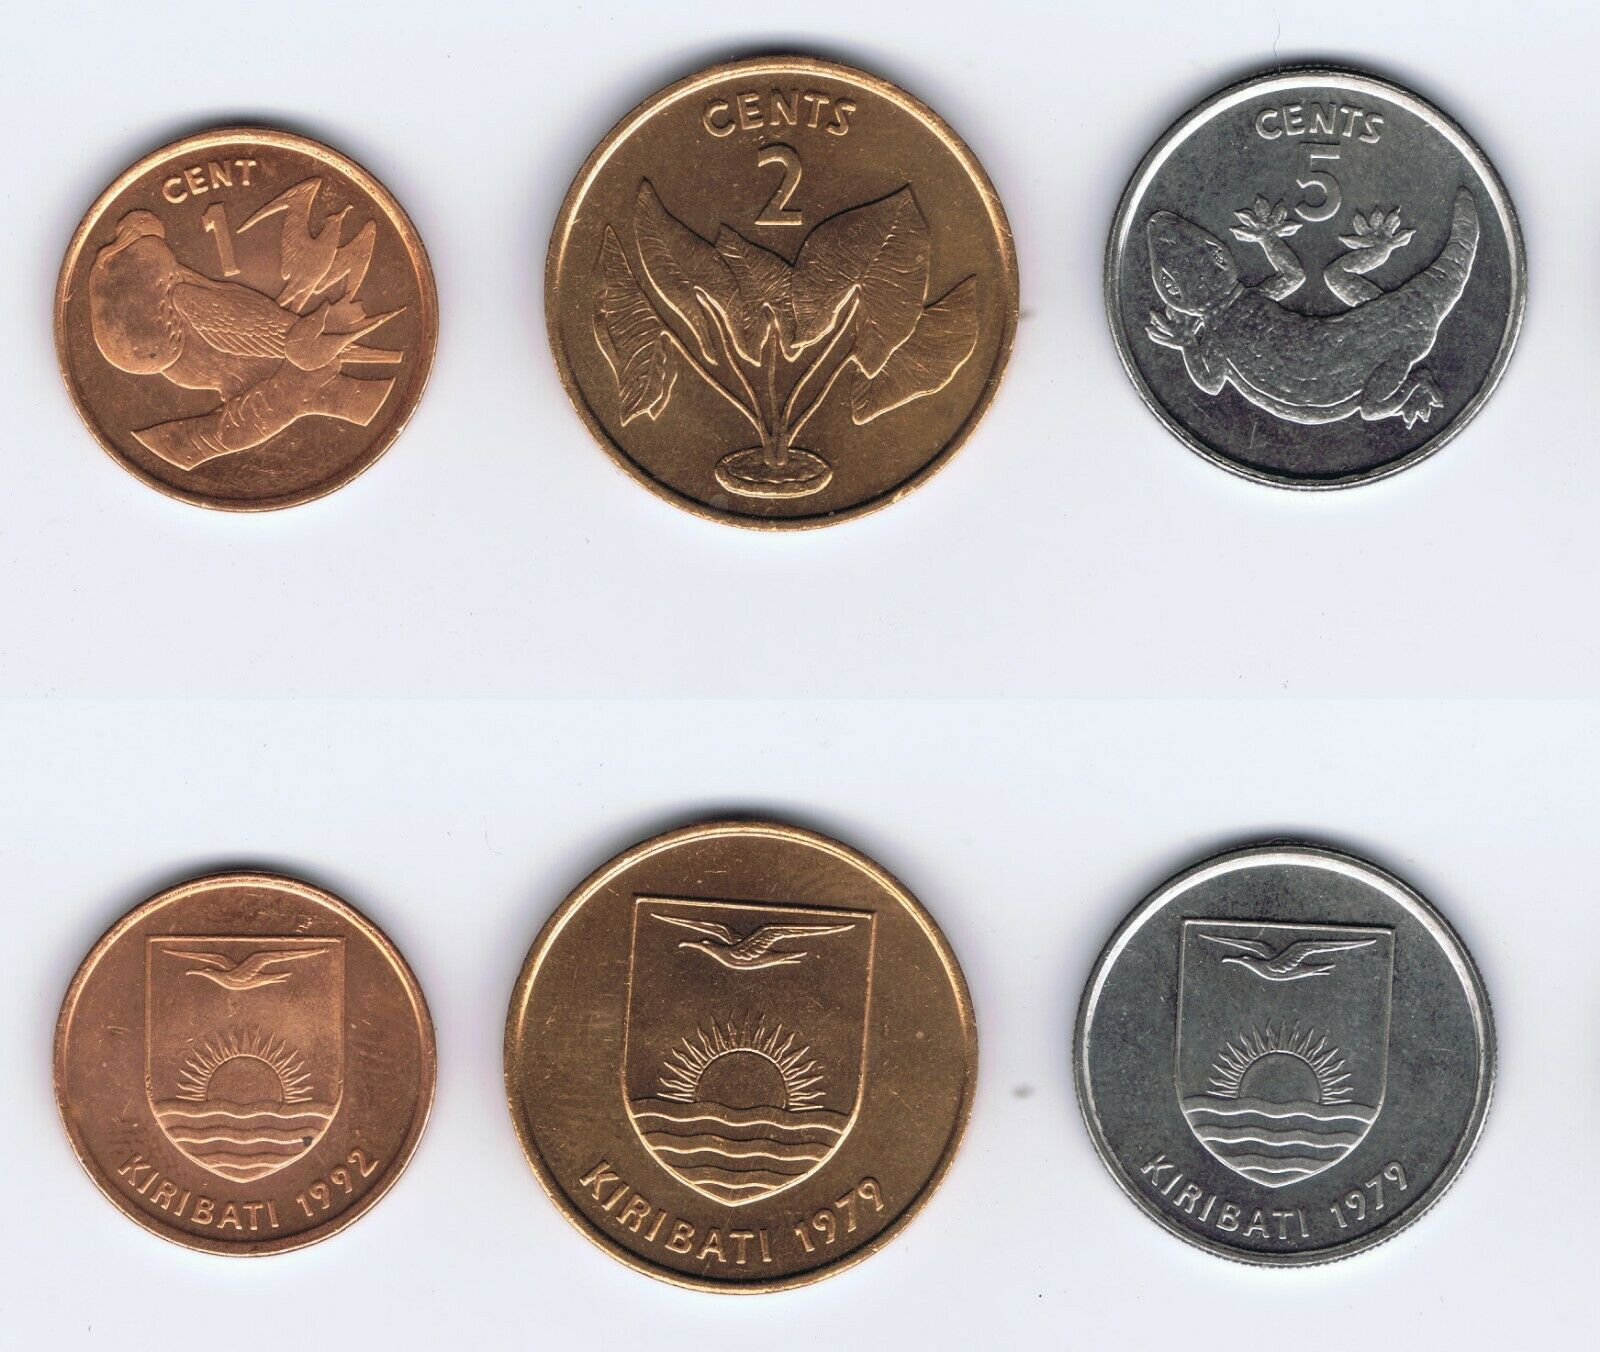 WHOLESALE 100 KIRIBATI UNC 1-2-5 CENTS COINS SHORT SETS DATED 1992 & 1979